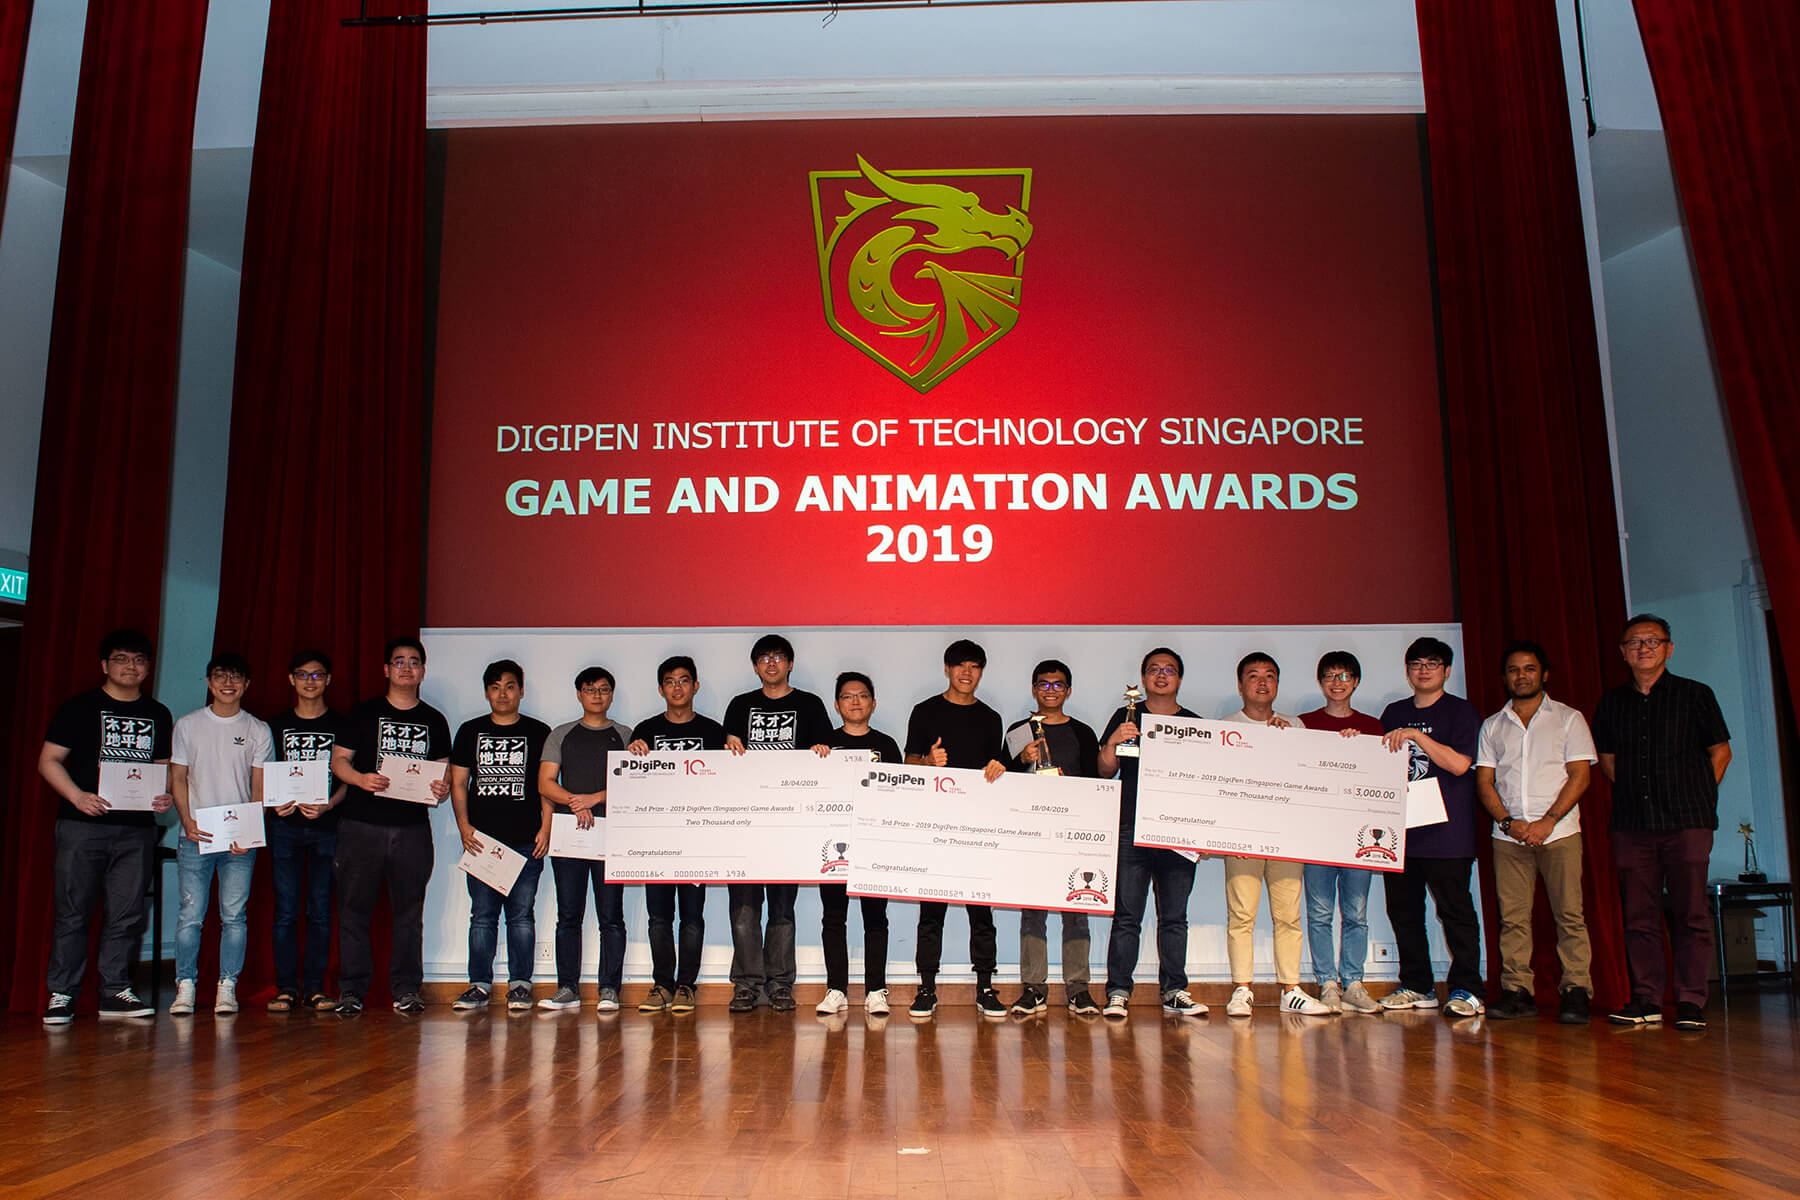 16 students line up in a row to show off their giant checks, certificates, and trophies during the DigiPen Game and Animation Awards show.